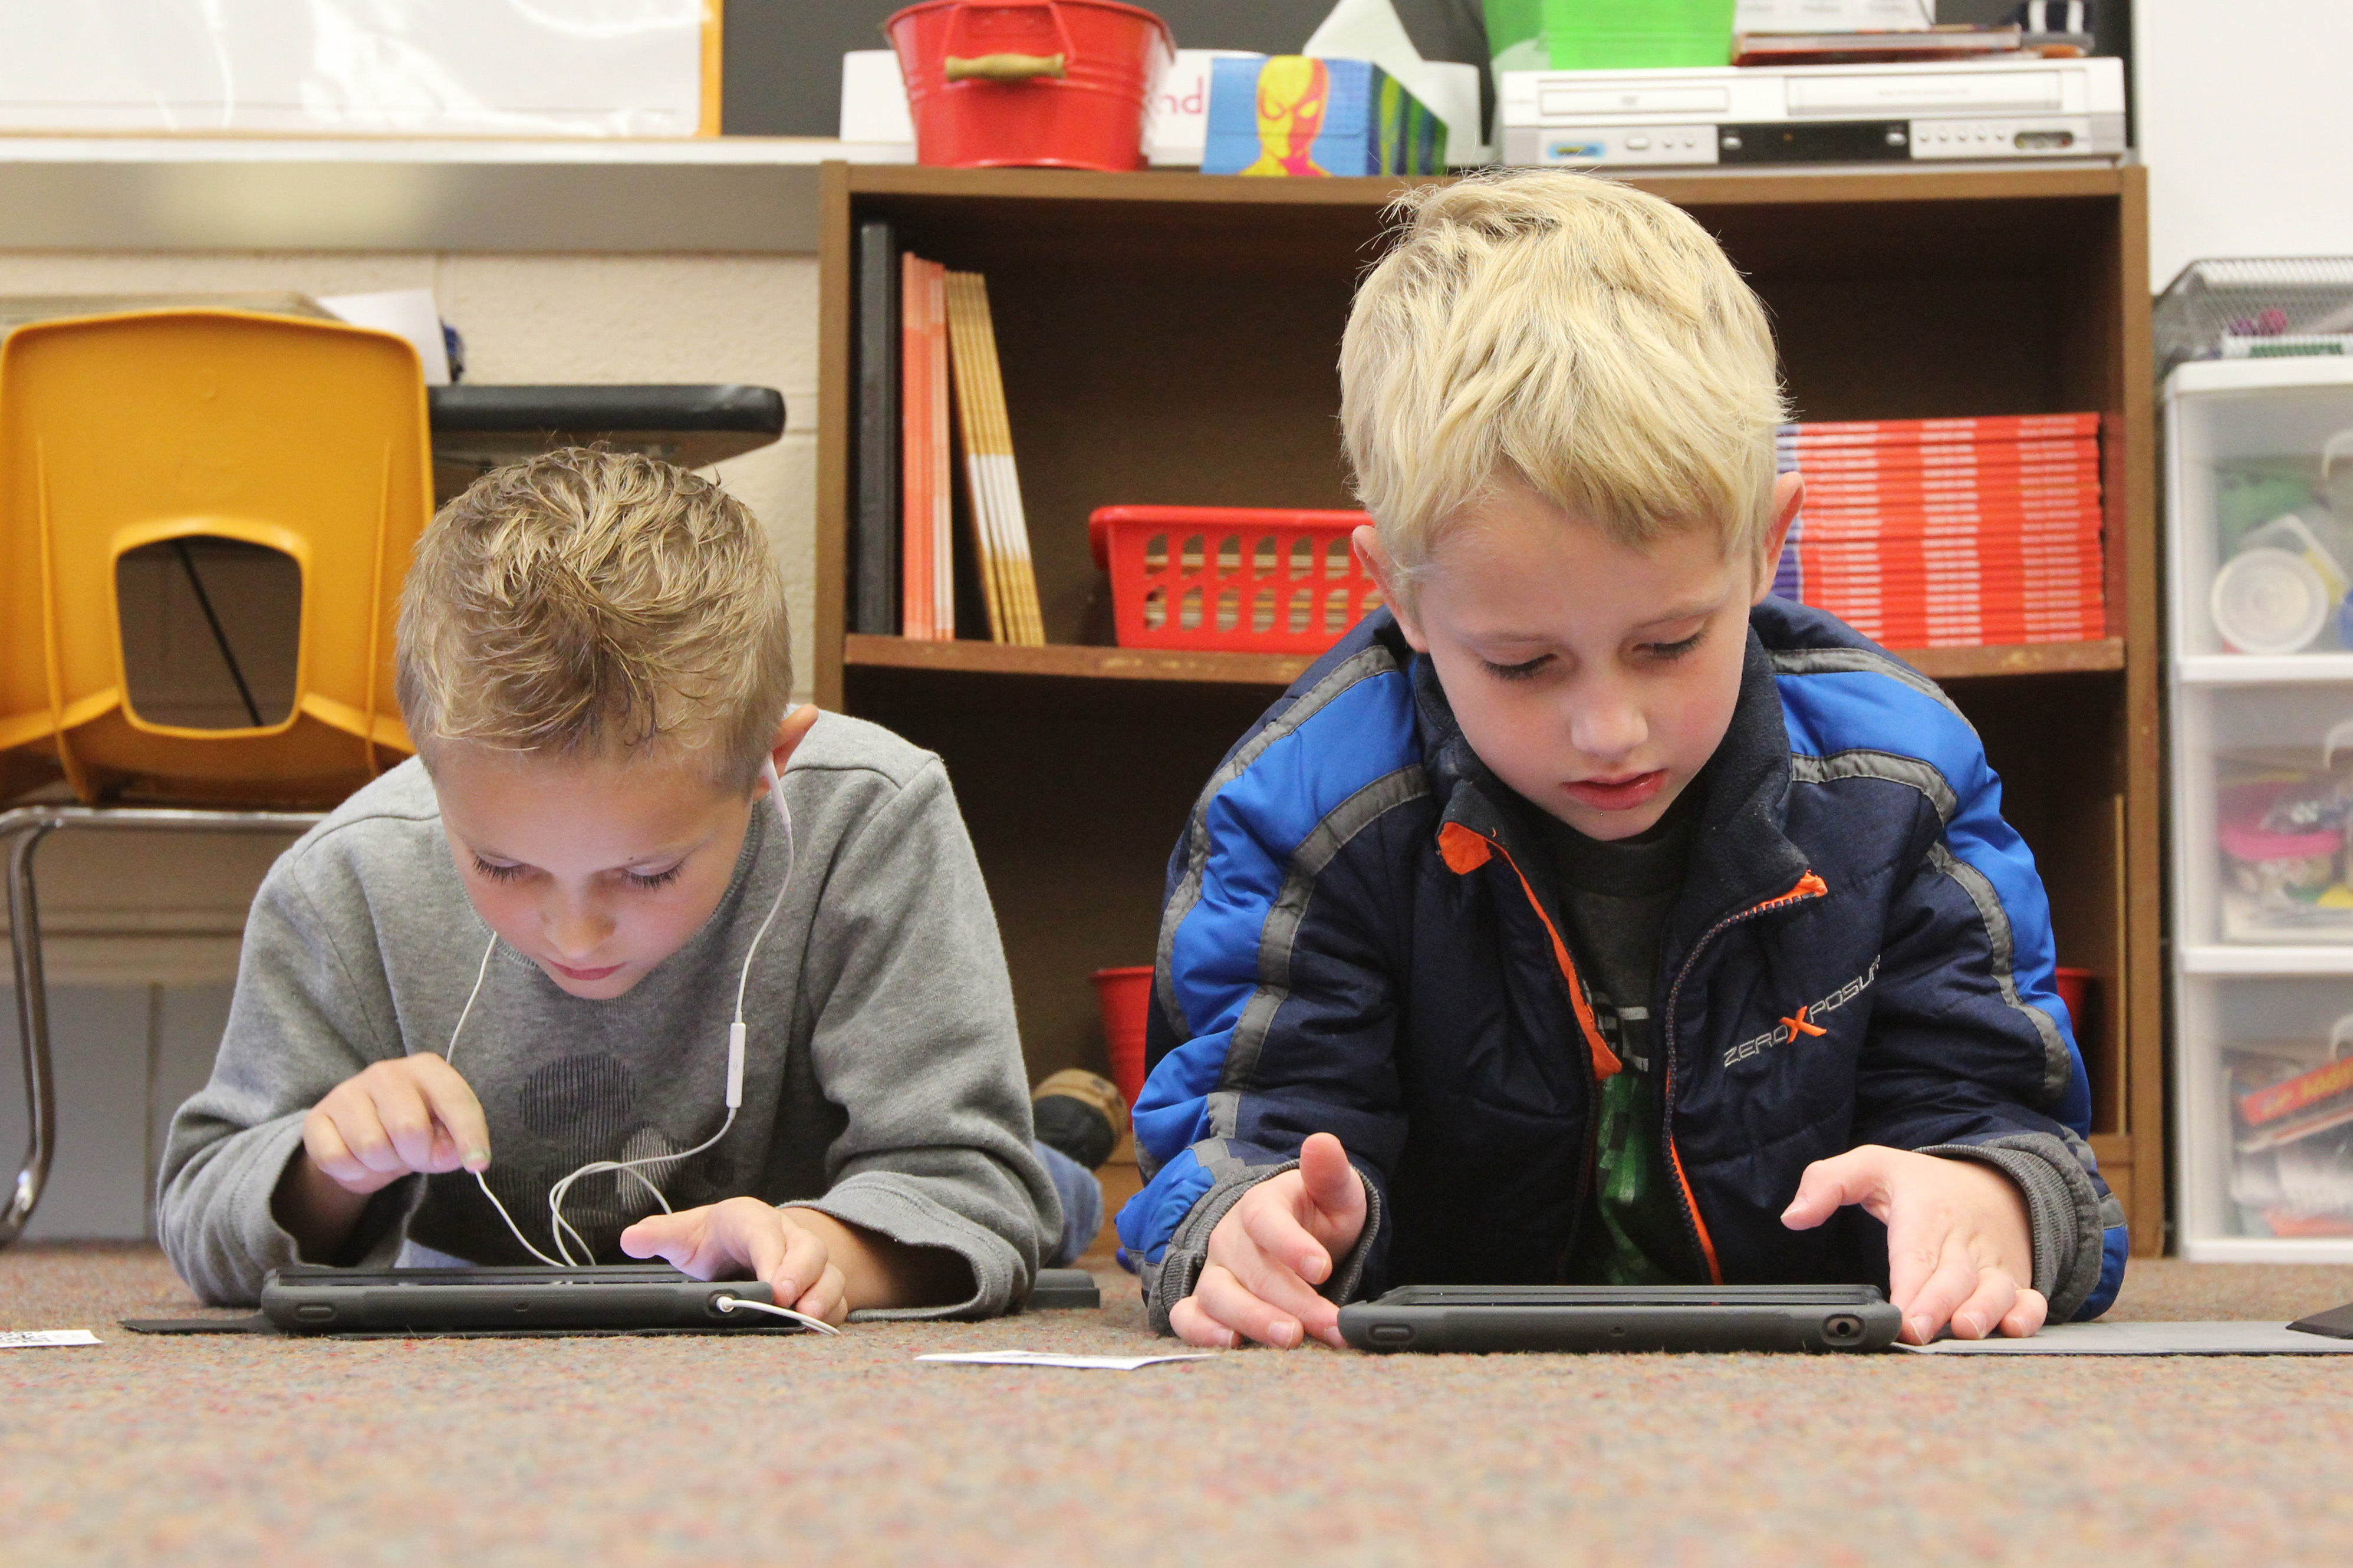 Two children use tablets